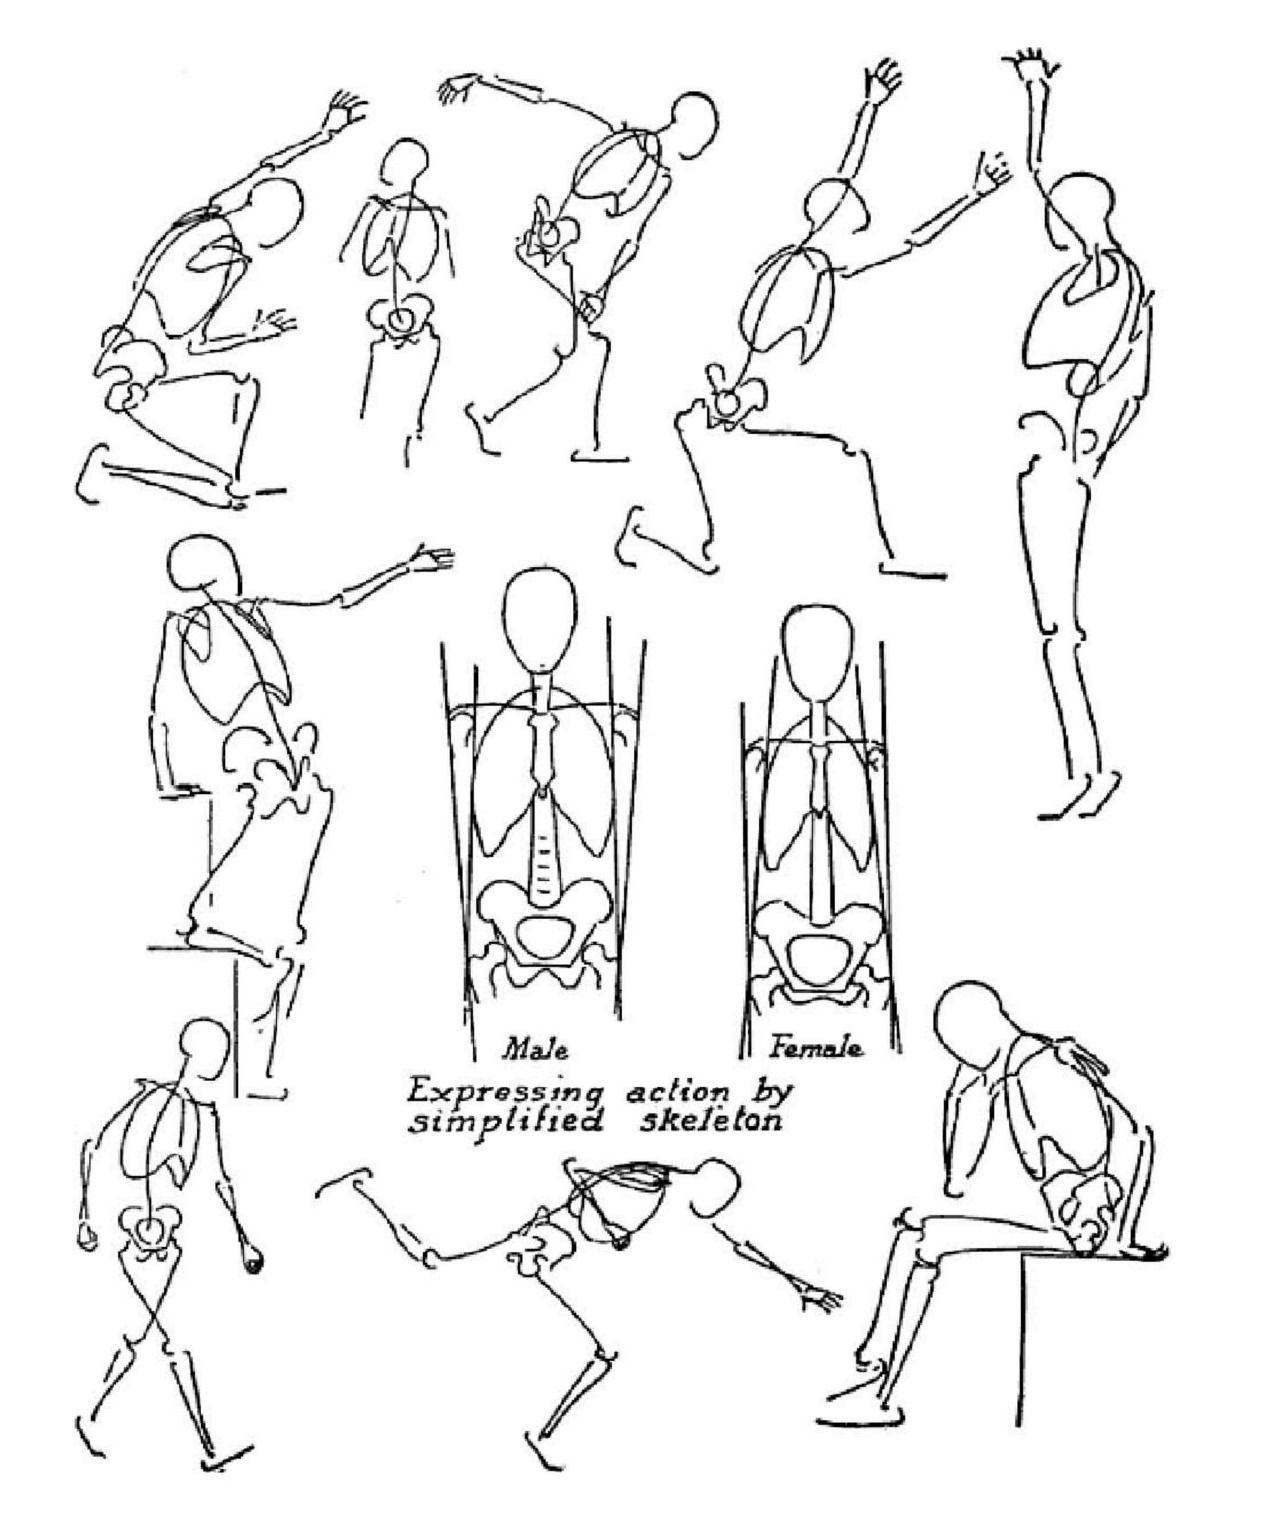 Anatomy and Drawing by Victor Perard | Victor Perard | Pinterest ...